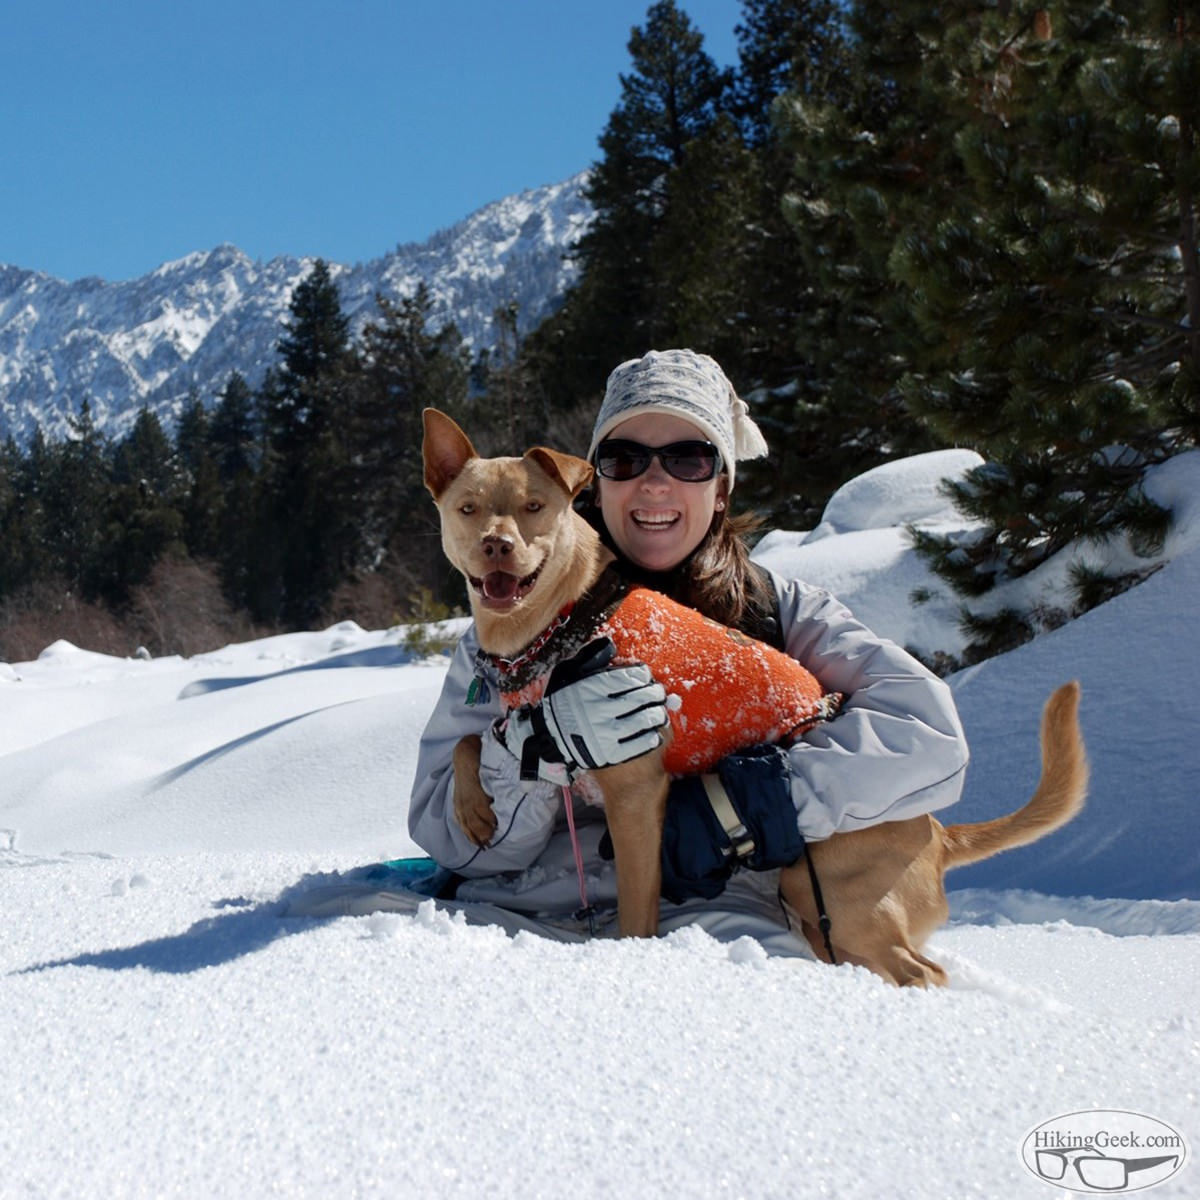 #ThrowbackThursday: A short hike and playing in the snow, 2011